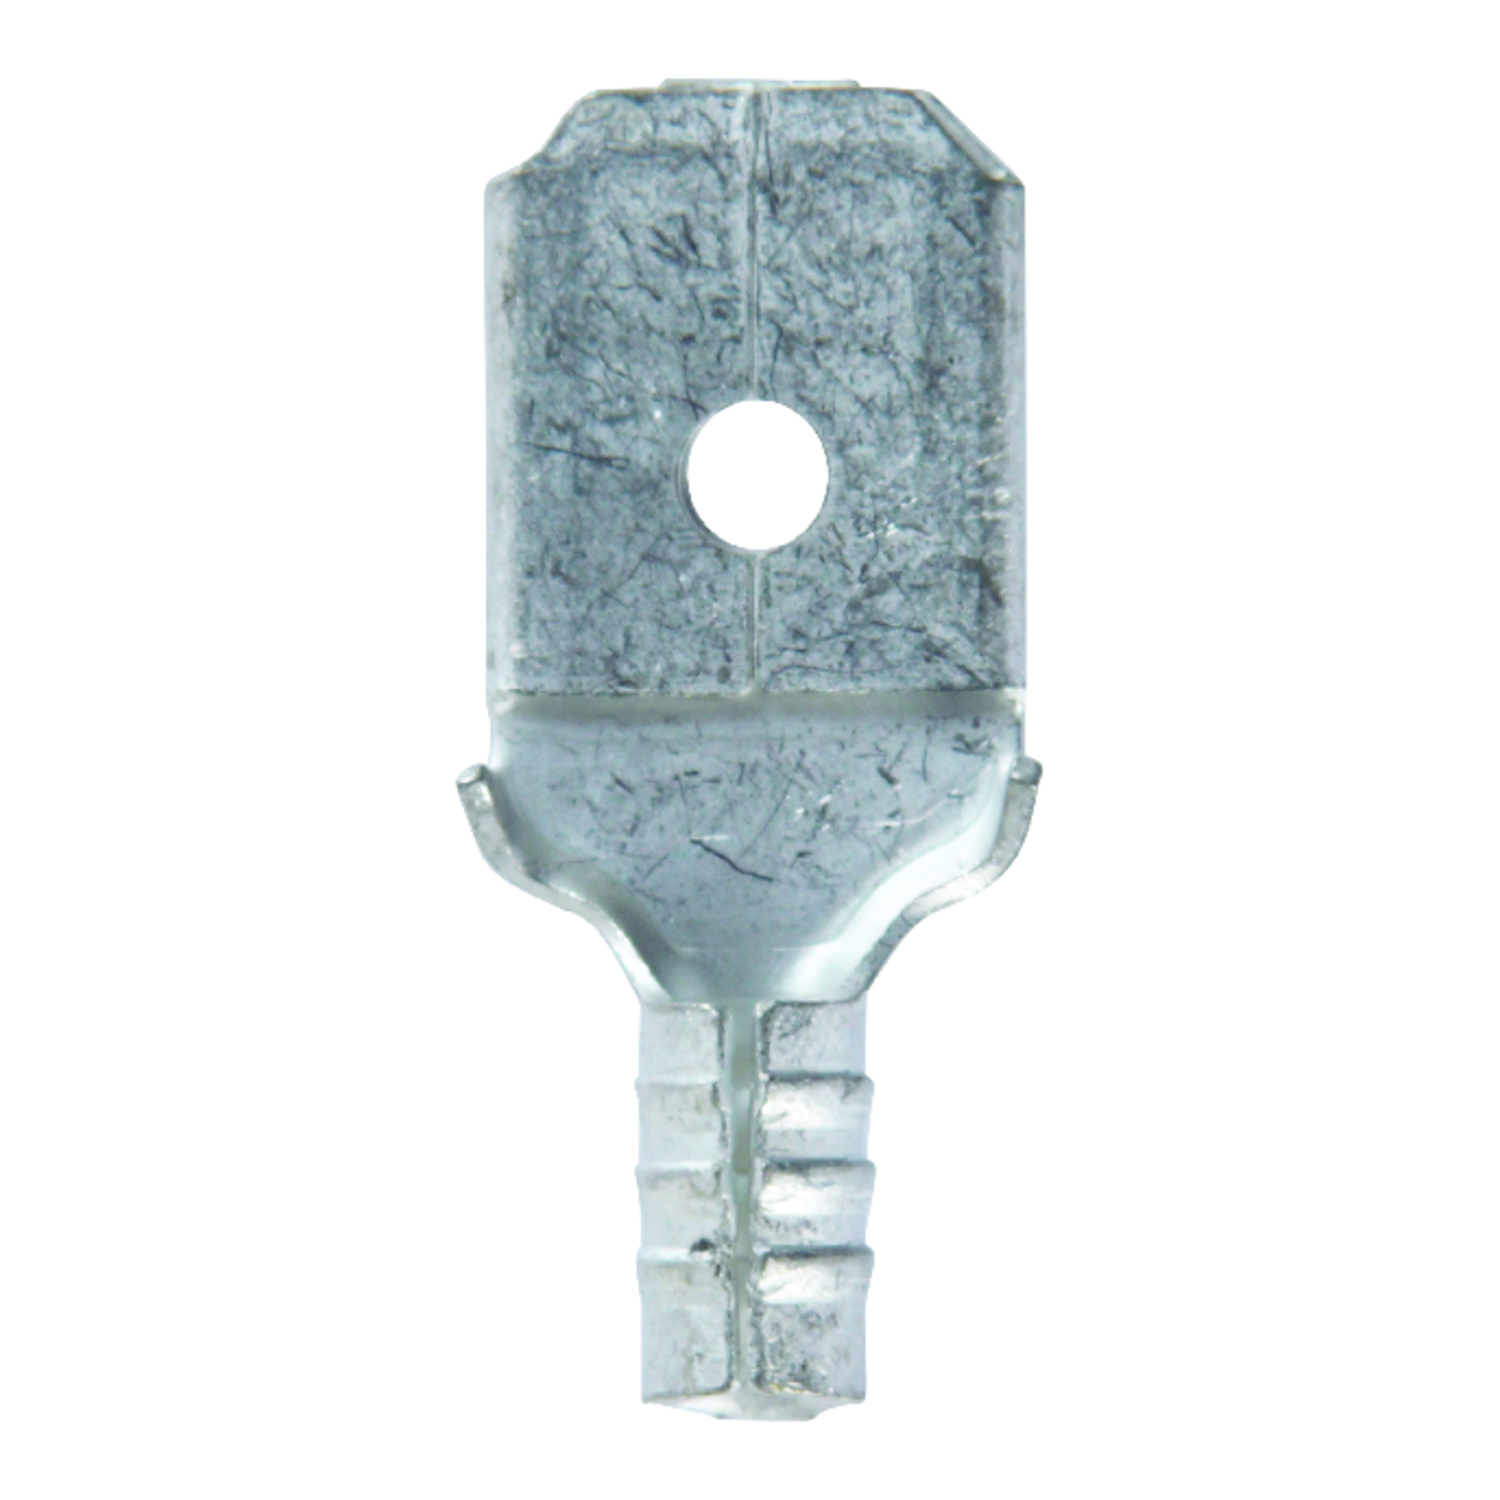 Jandorf 22-18 Ga. Uninsulated Wire Male Disconnect 5 pk - Ace Hardware